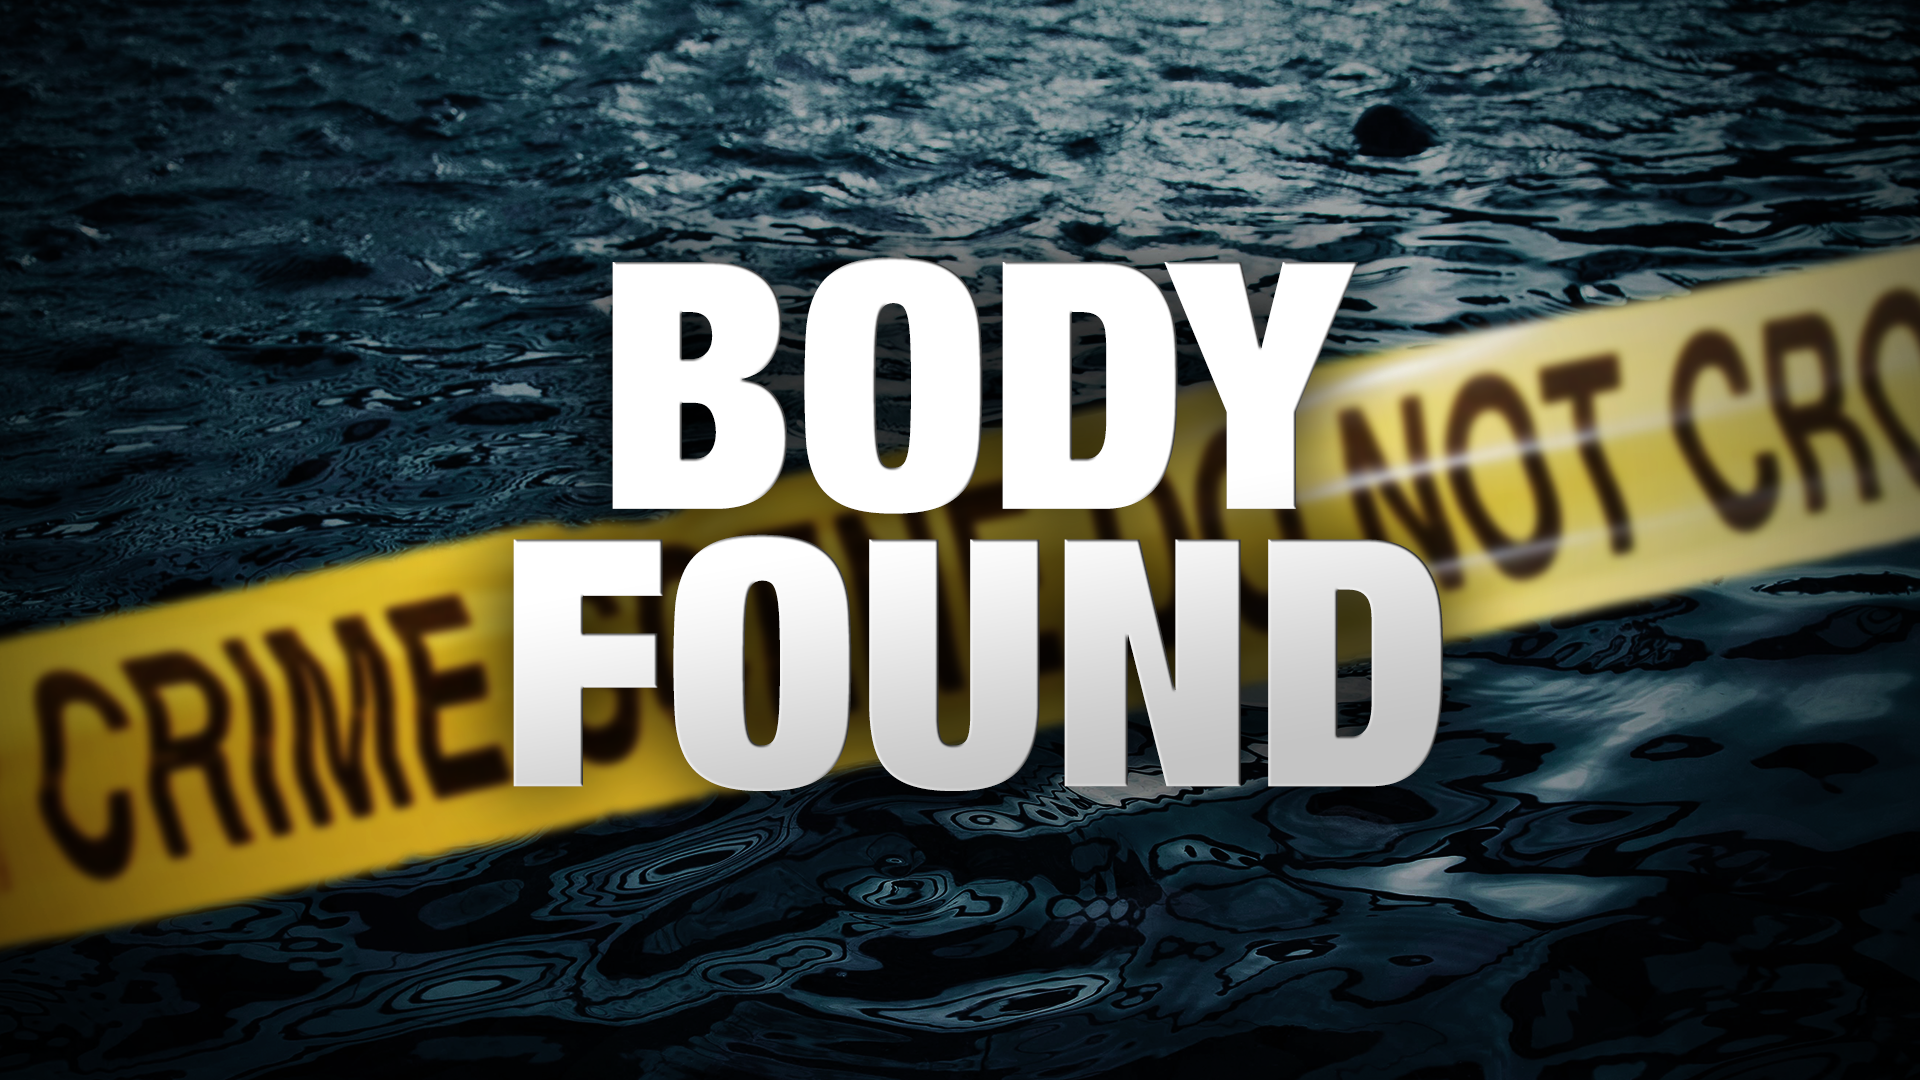 Body Found in_near water graphic_42821